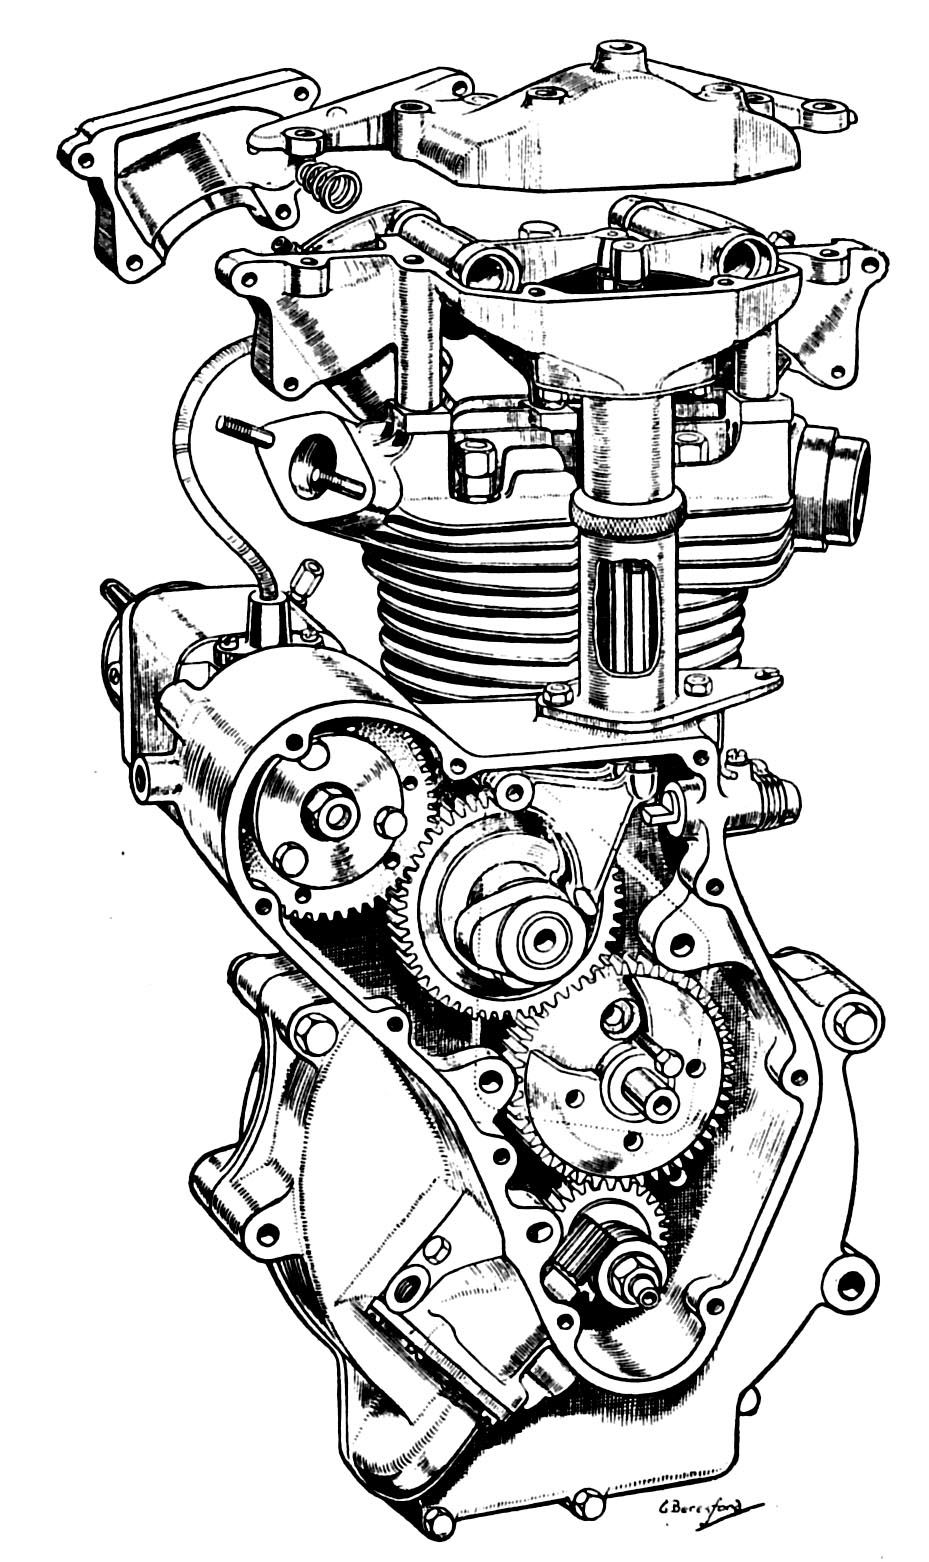 small resolution of cutaway view of the 1973 kawasaki z1 900 engine description from pinterest com